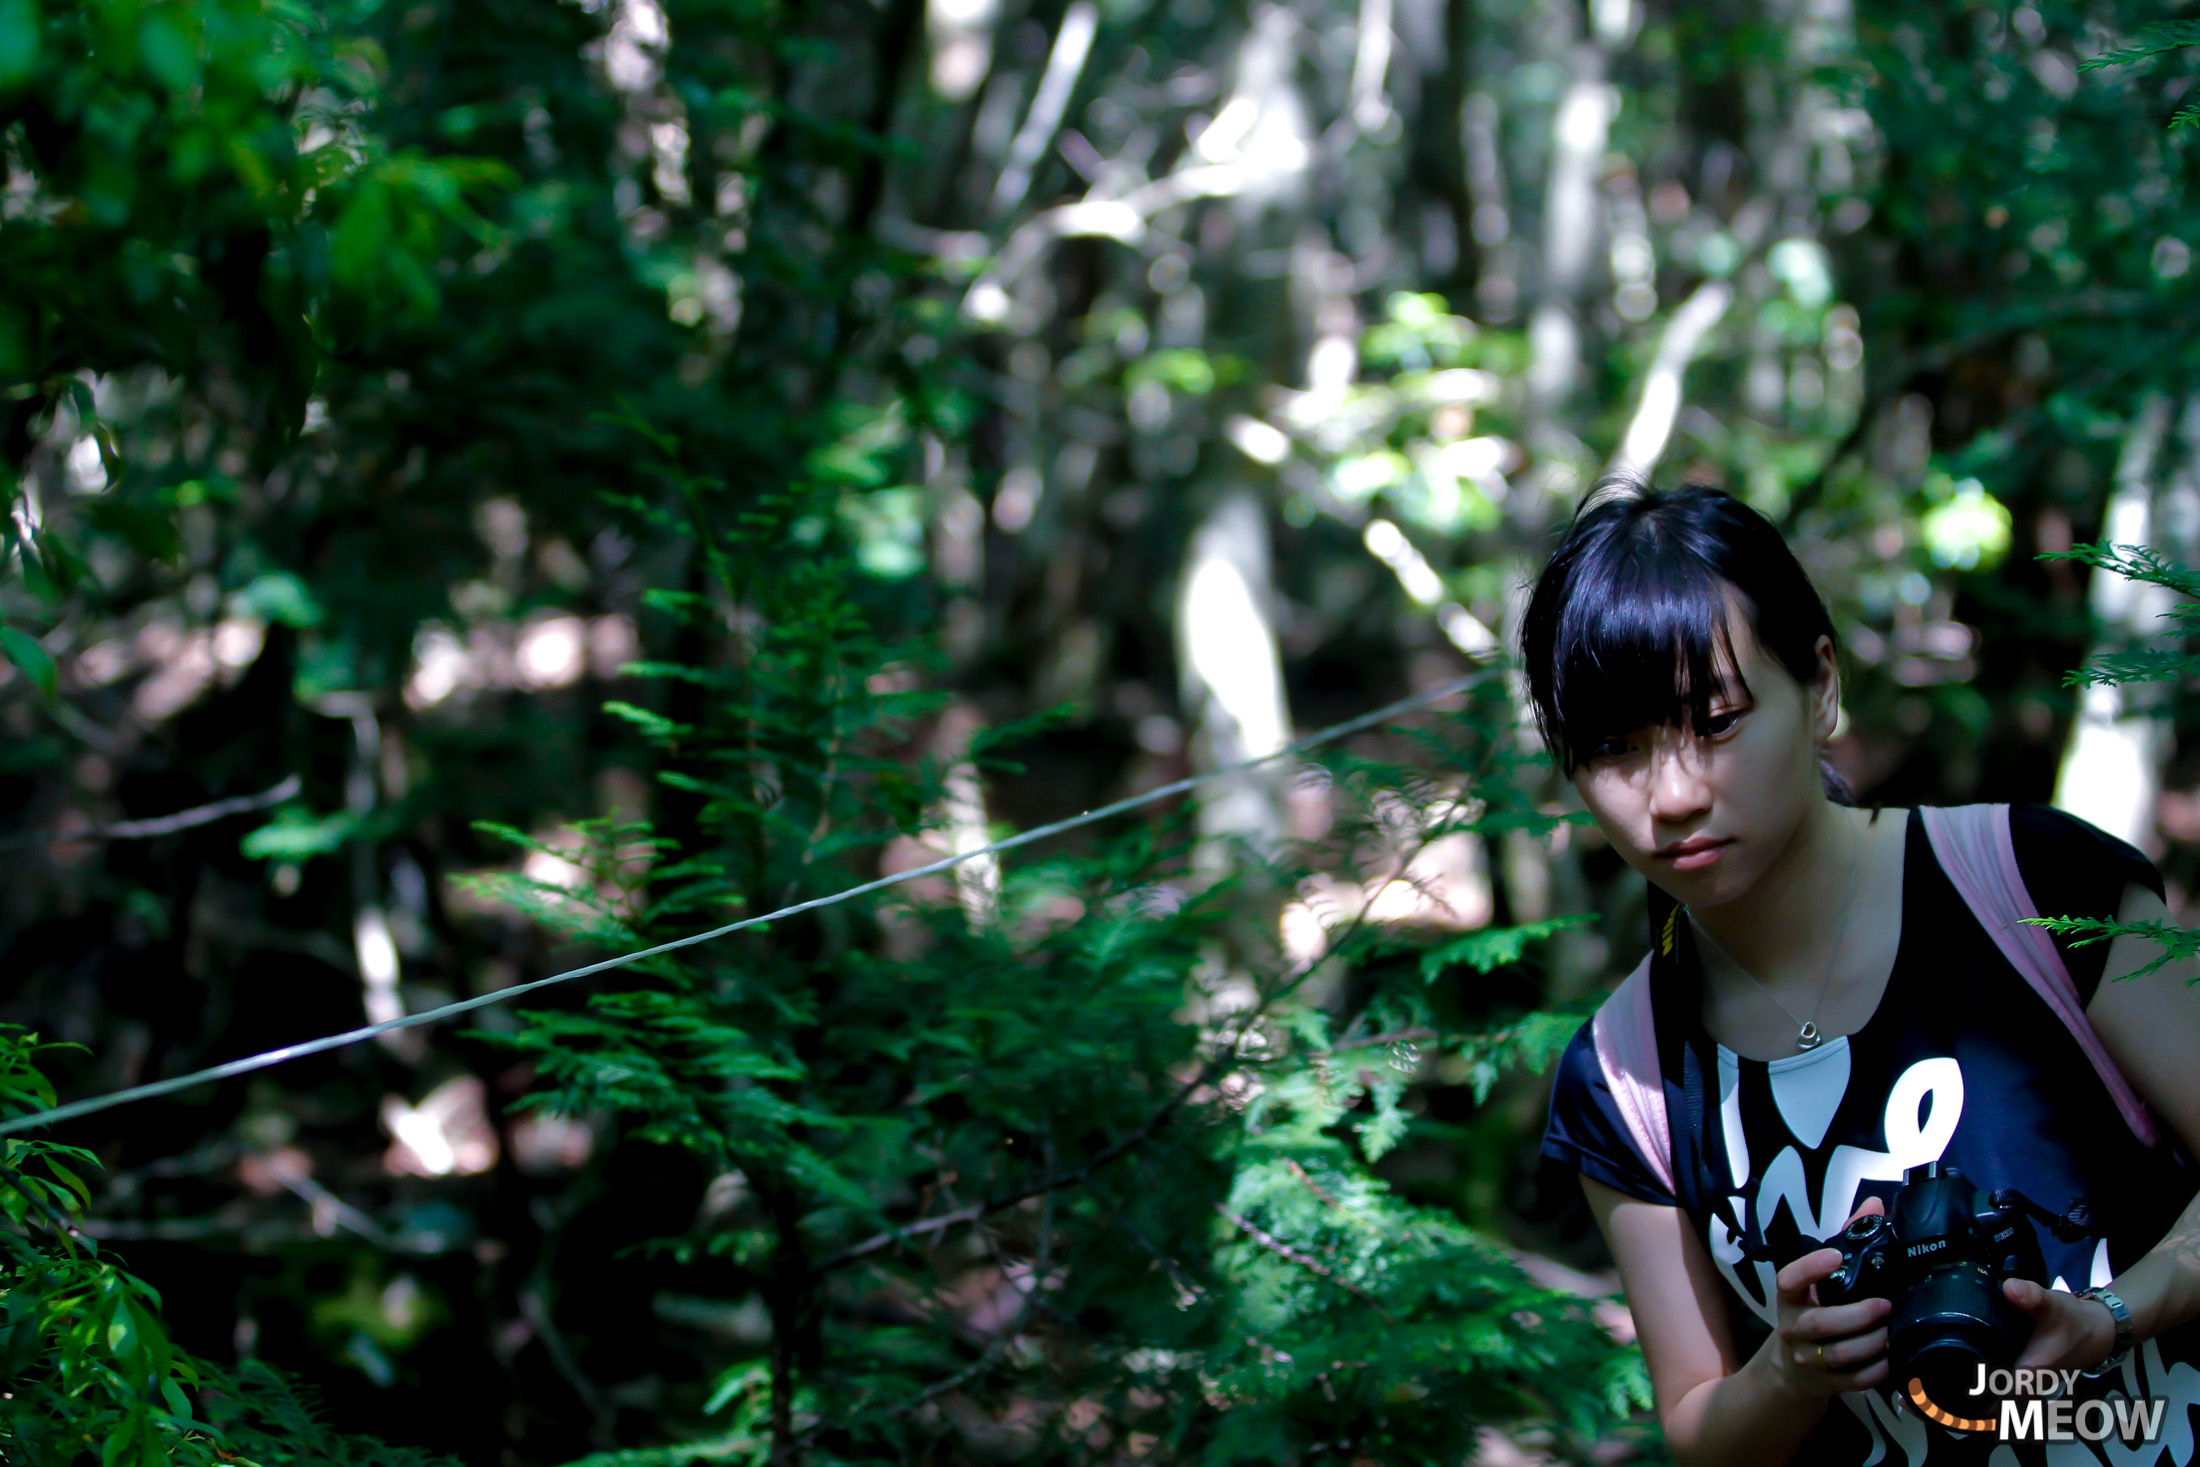 Jing, aokigahara, chinese, chubu, forest, japan, japanese, natural, nature, people, yamanashi